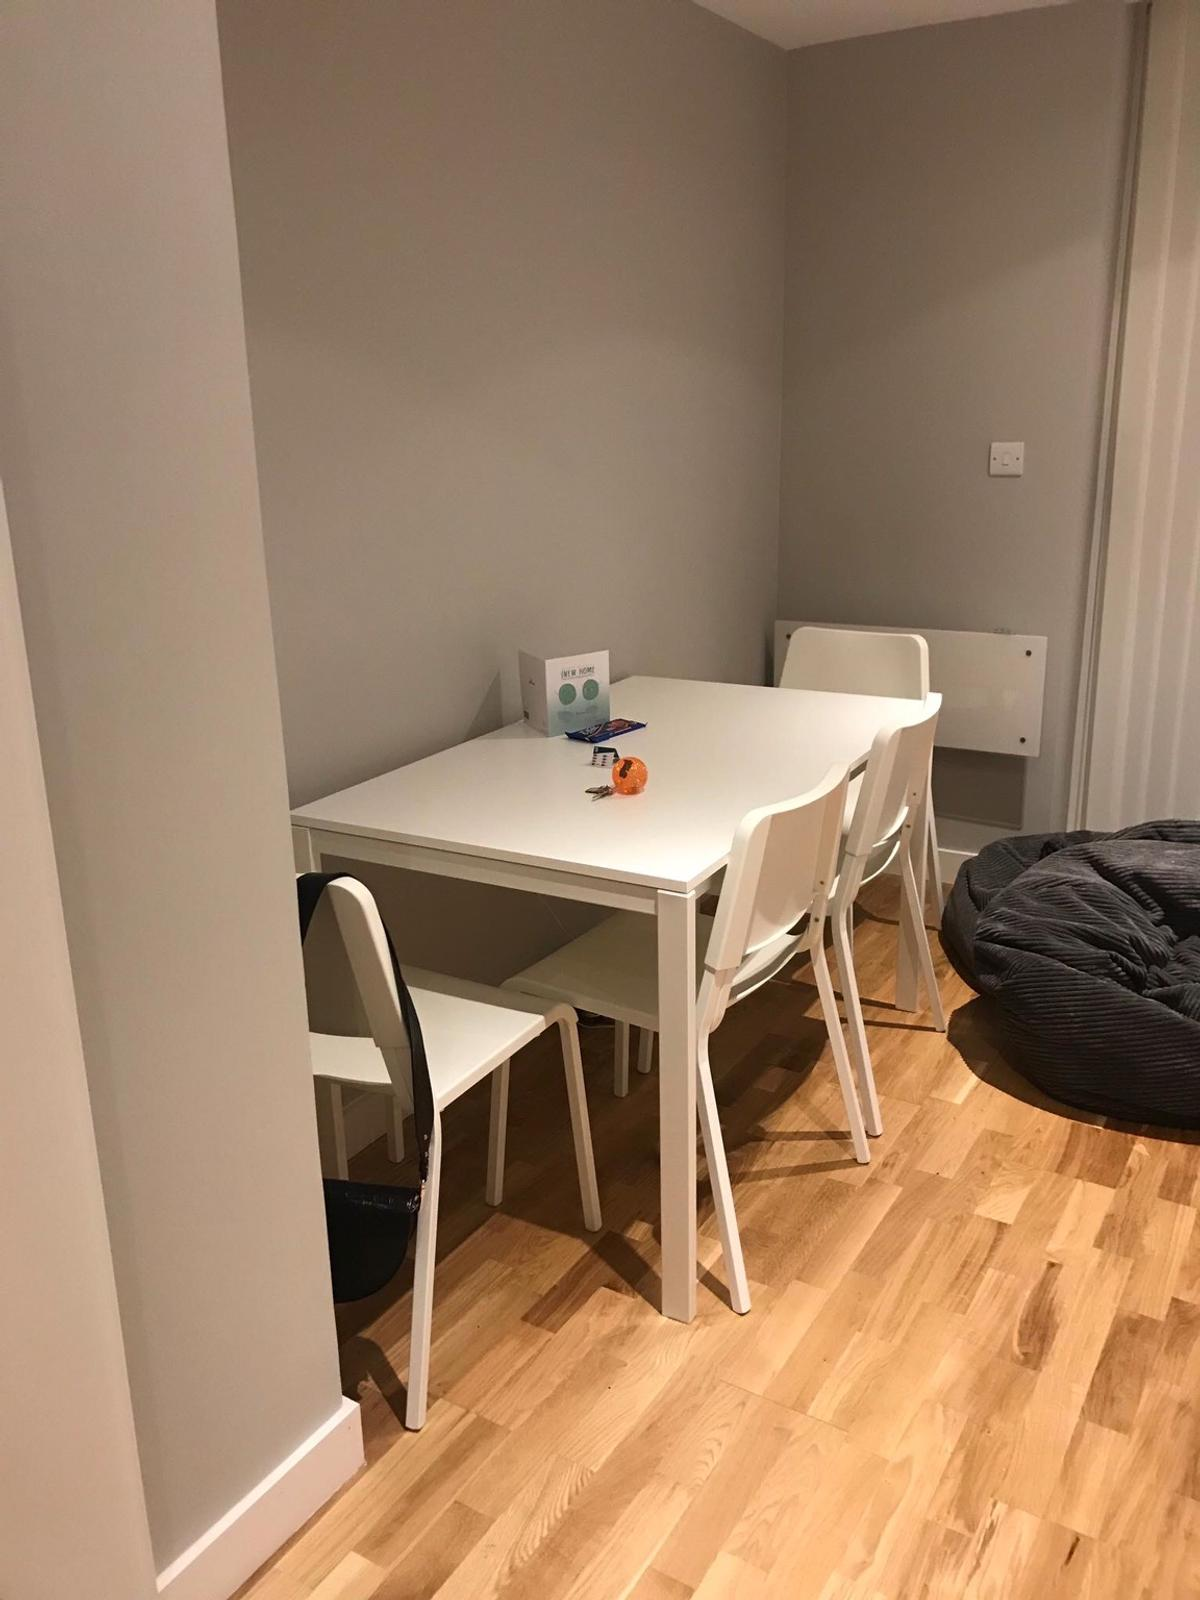 Dining Set Ikea In W7 Ealing For 65 00 For Sale Shpock